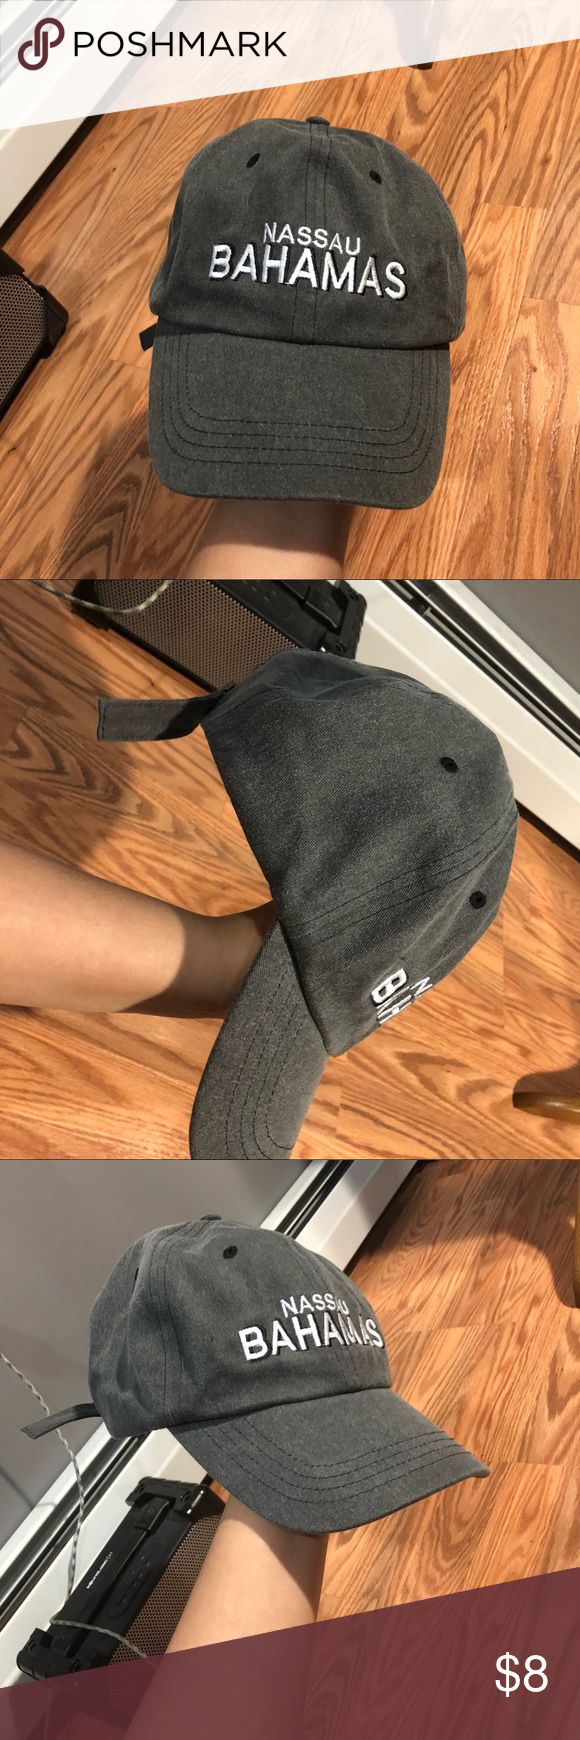 New Bahamas fitted baseball cap NO TRADES! •not brandy Melville; used for exposure; inspired by/lookalike  •perfect condition! Never worn or even tried on 📦Same or next day shipping!📦 Brandy Melville Accessories Hats